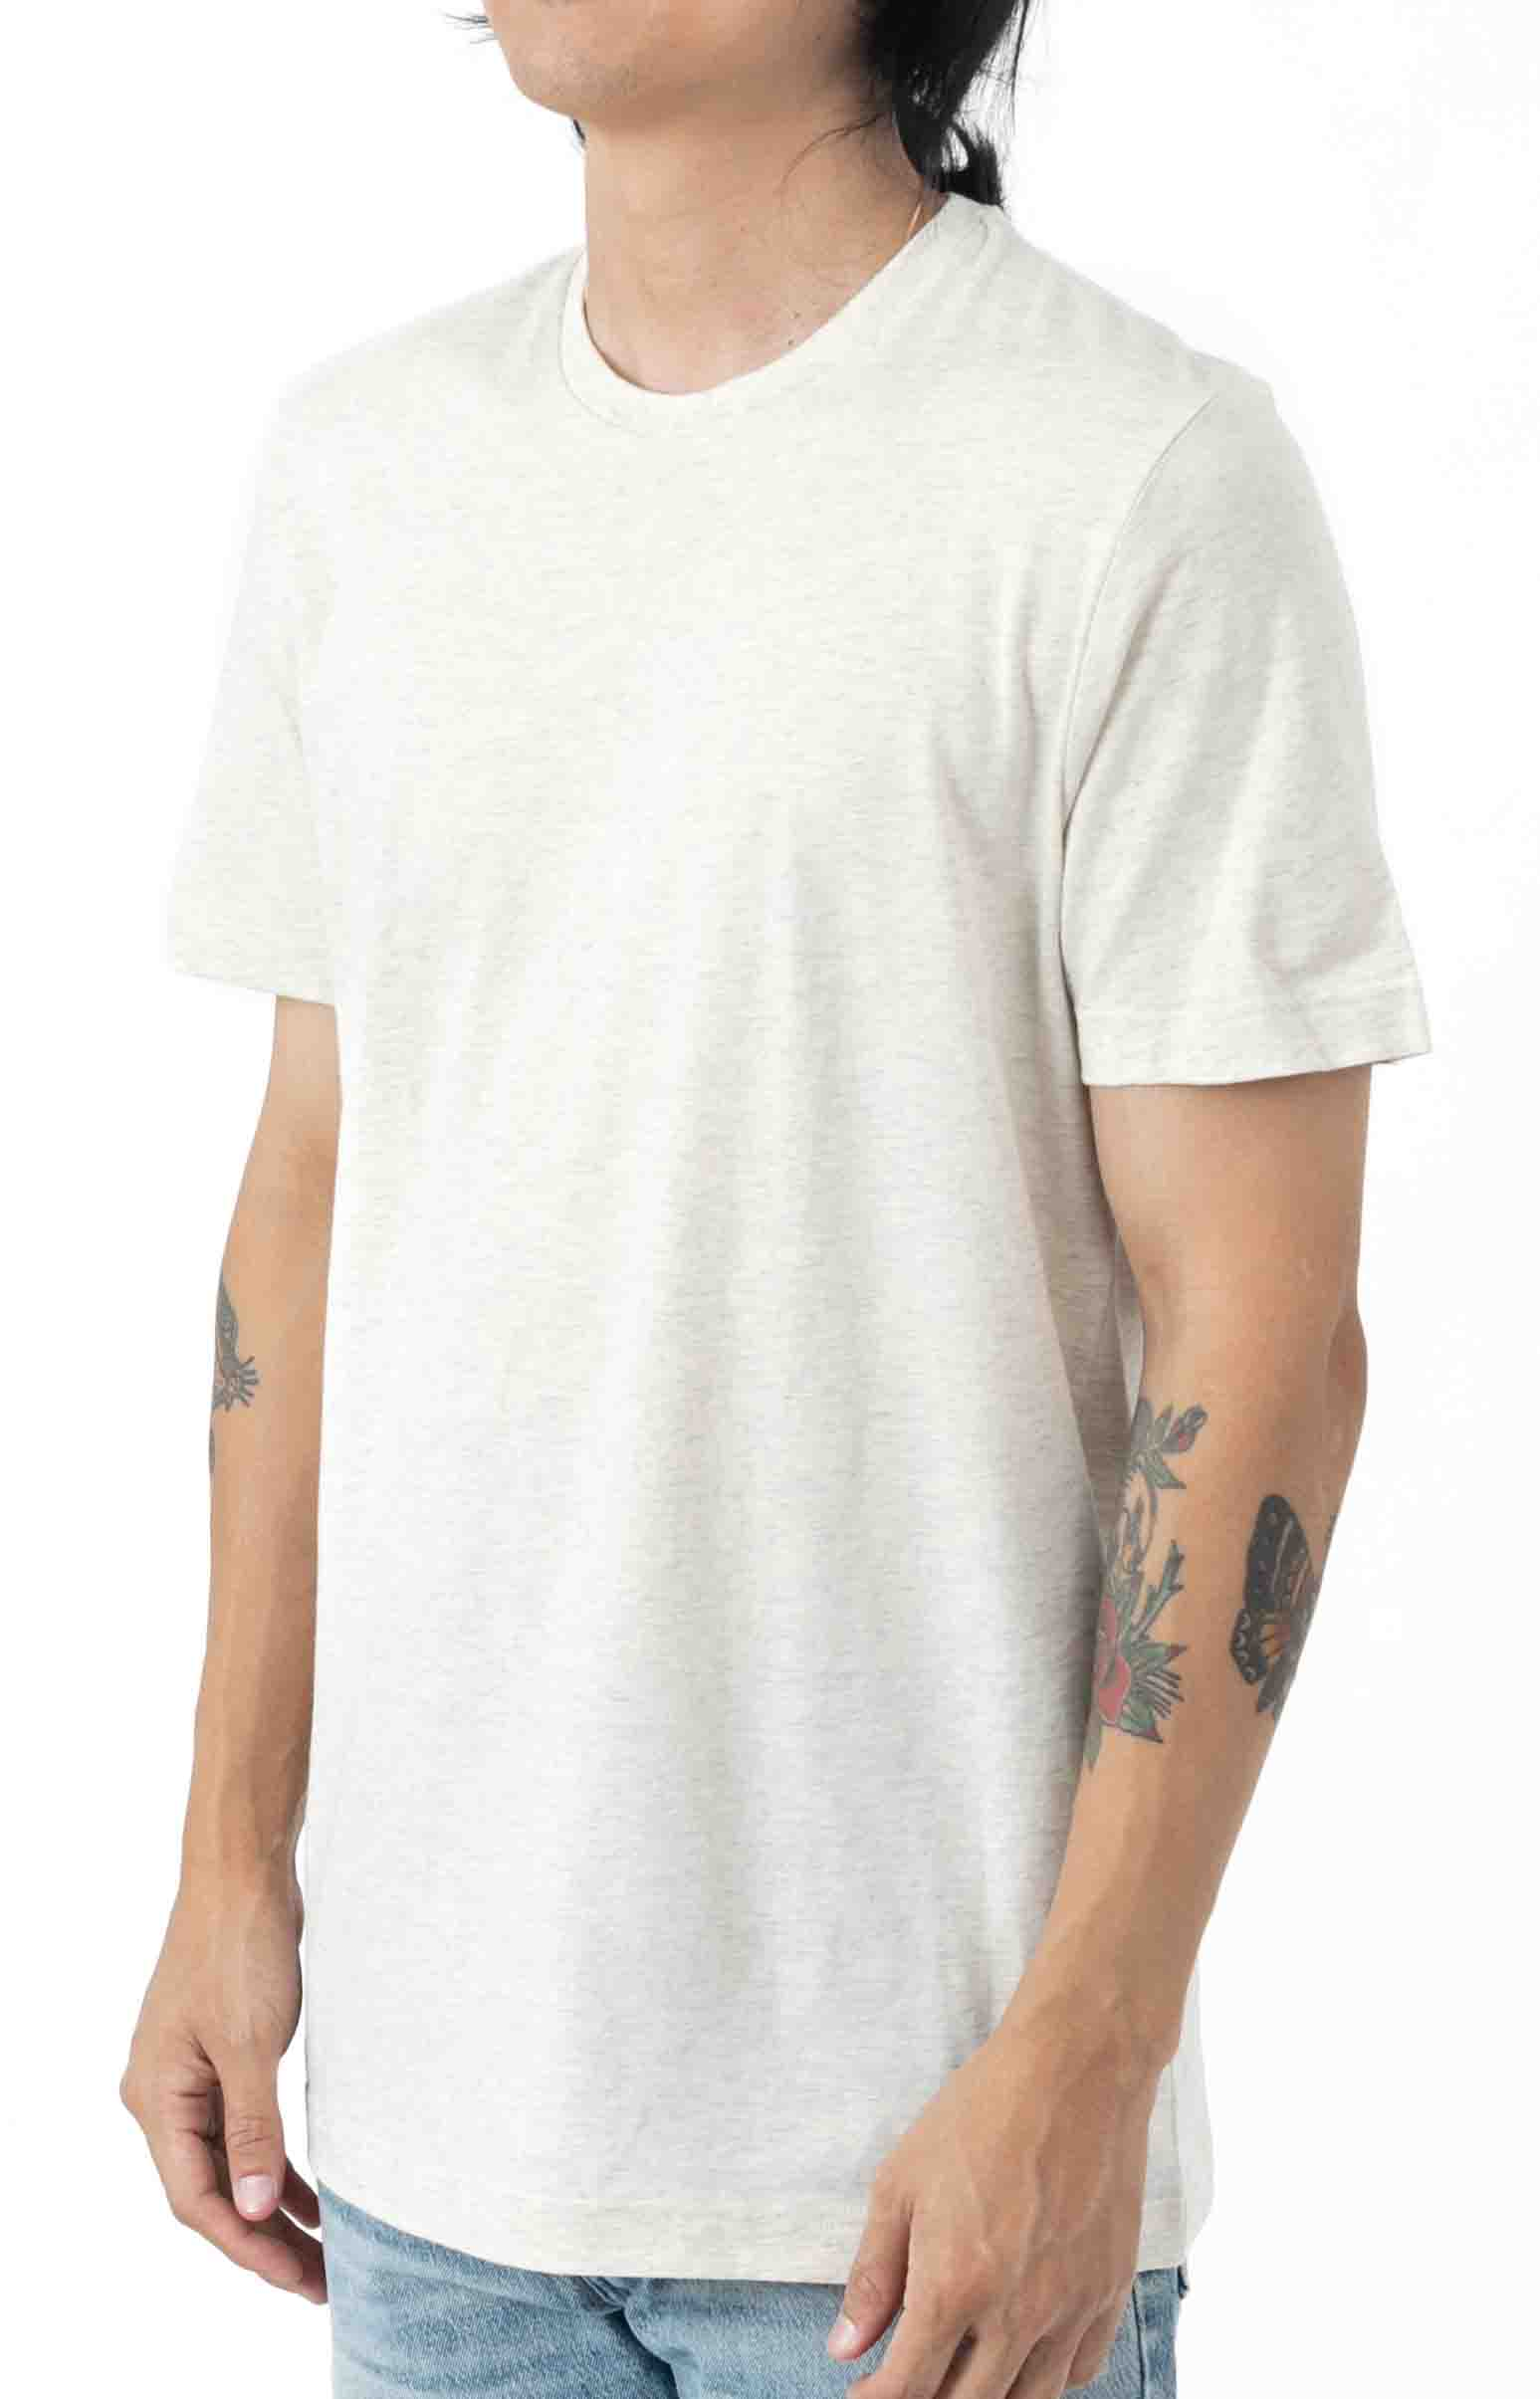 (L163RL) Relaxed Fit Crew T-Shirt - Oxford Heather  2